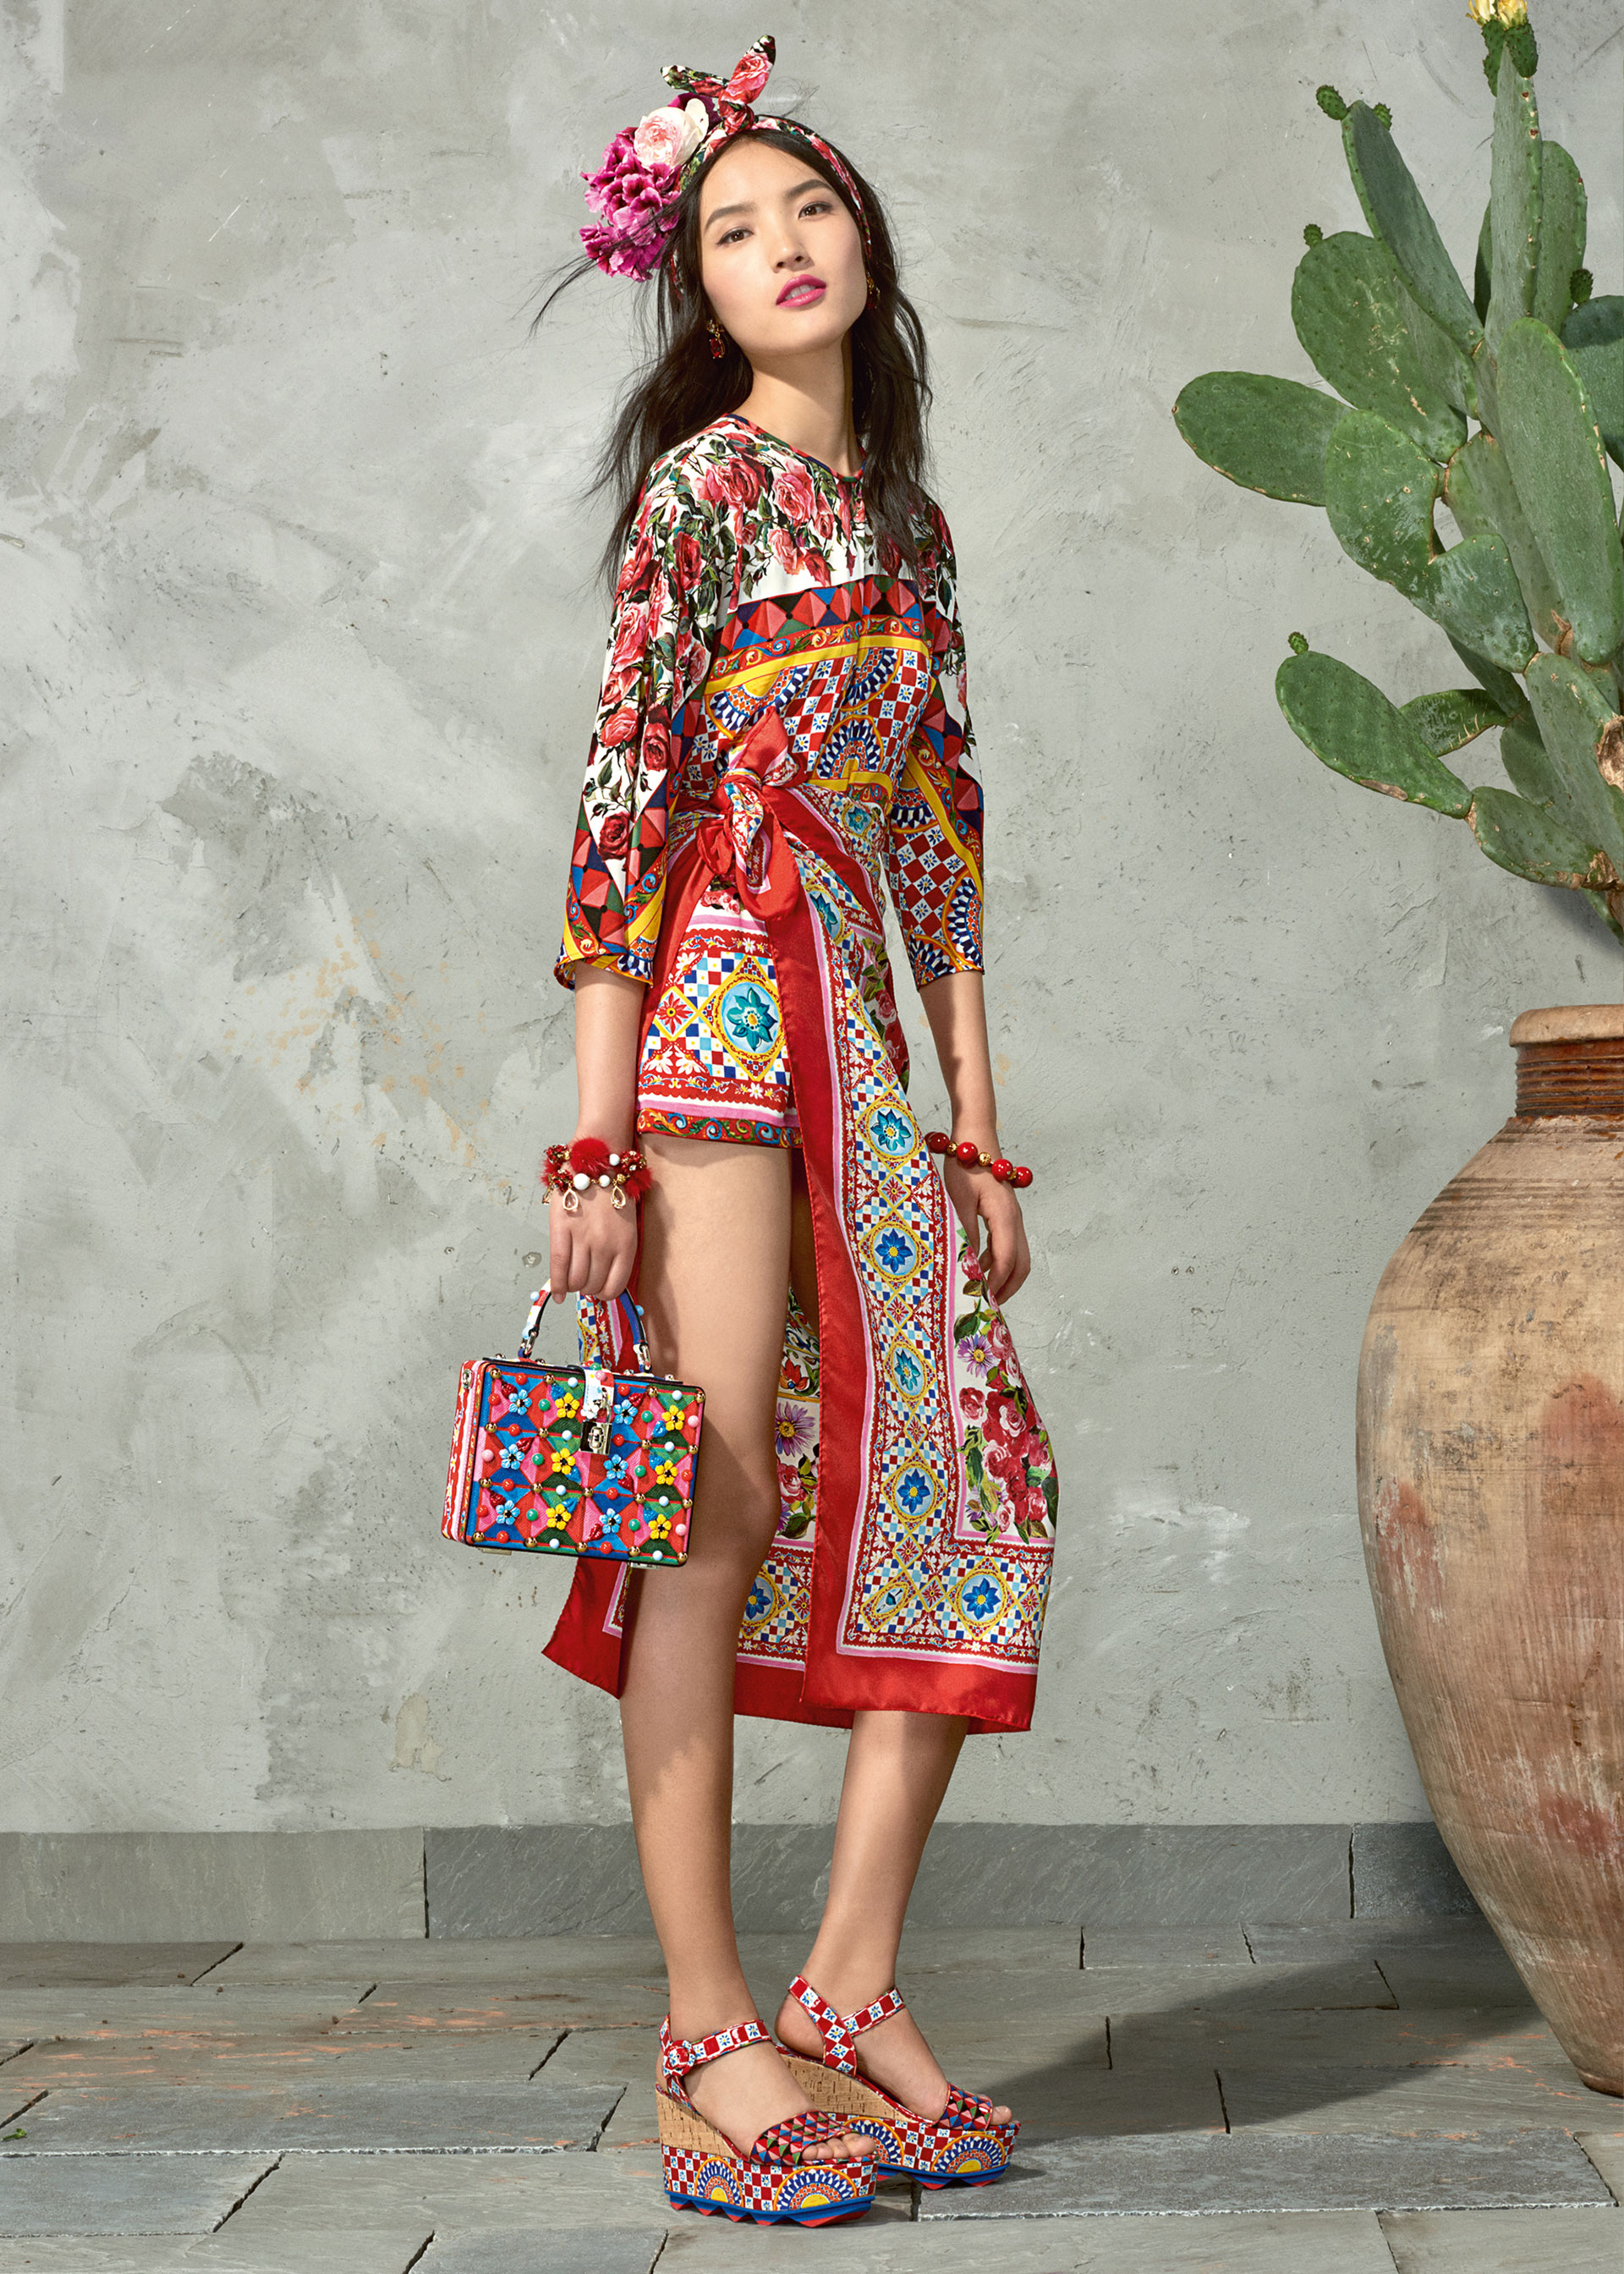 dolce and gabbana summer 2017 woman collection 100 - Dolce & Gabbana/Spring Summer 2017 Collection/ Mambo